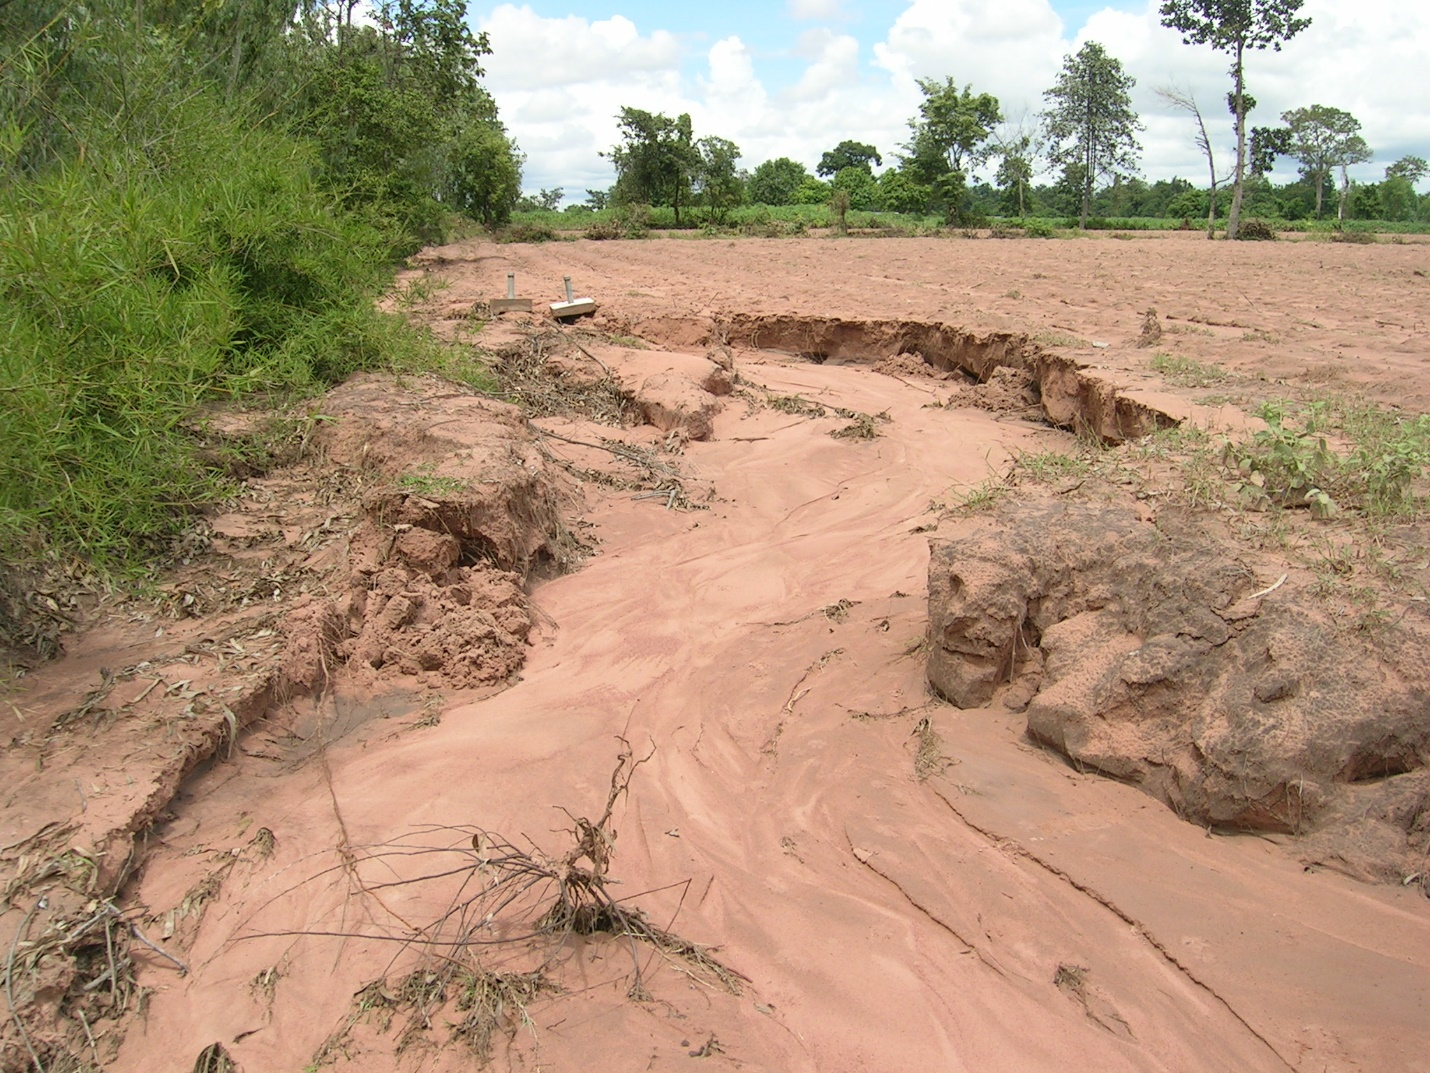 Soil erosion in northeast Thailand. Losing precious surface soil which is already been degraded with very low soil organic carbon and nutrients. (Photo by Yuji Niino, FAO)